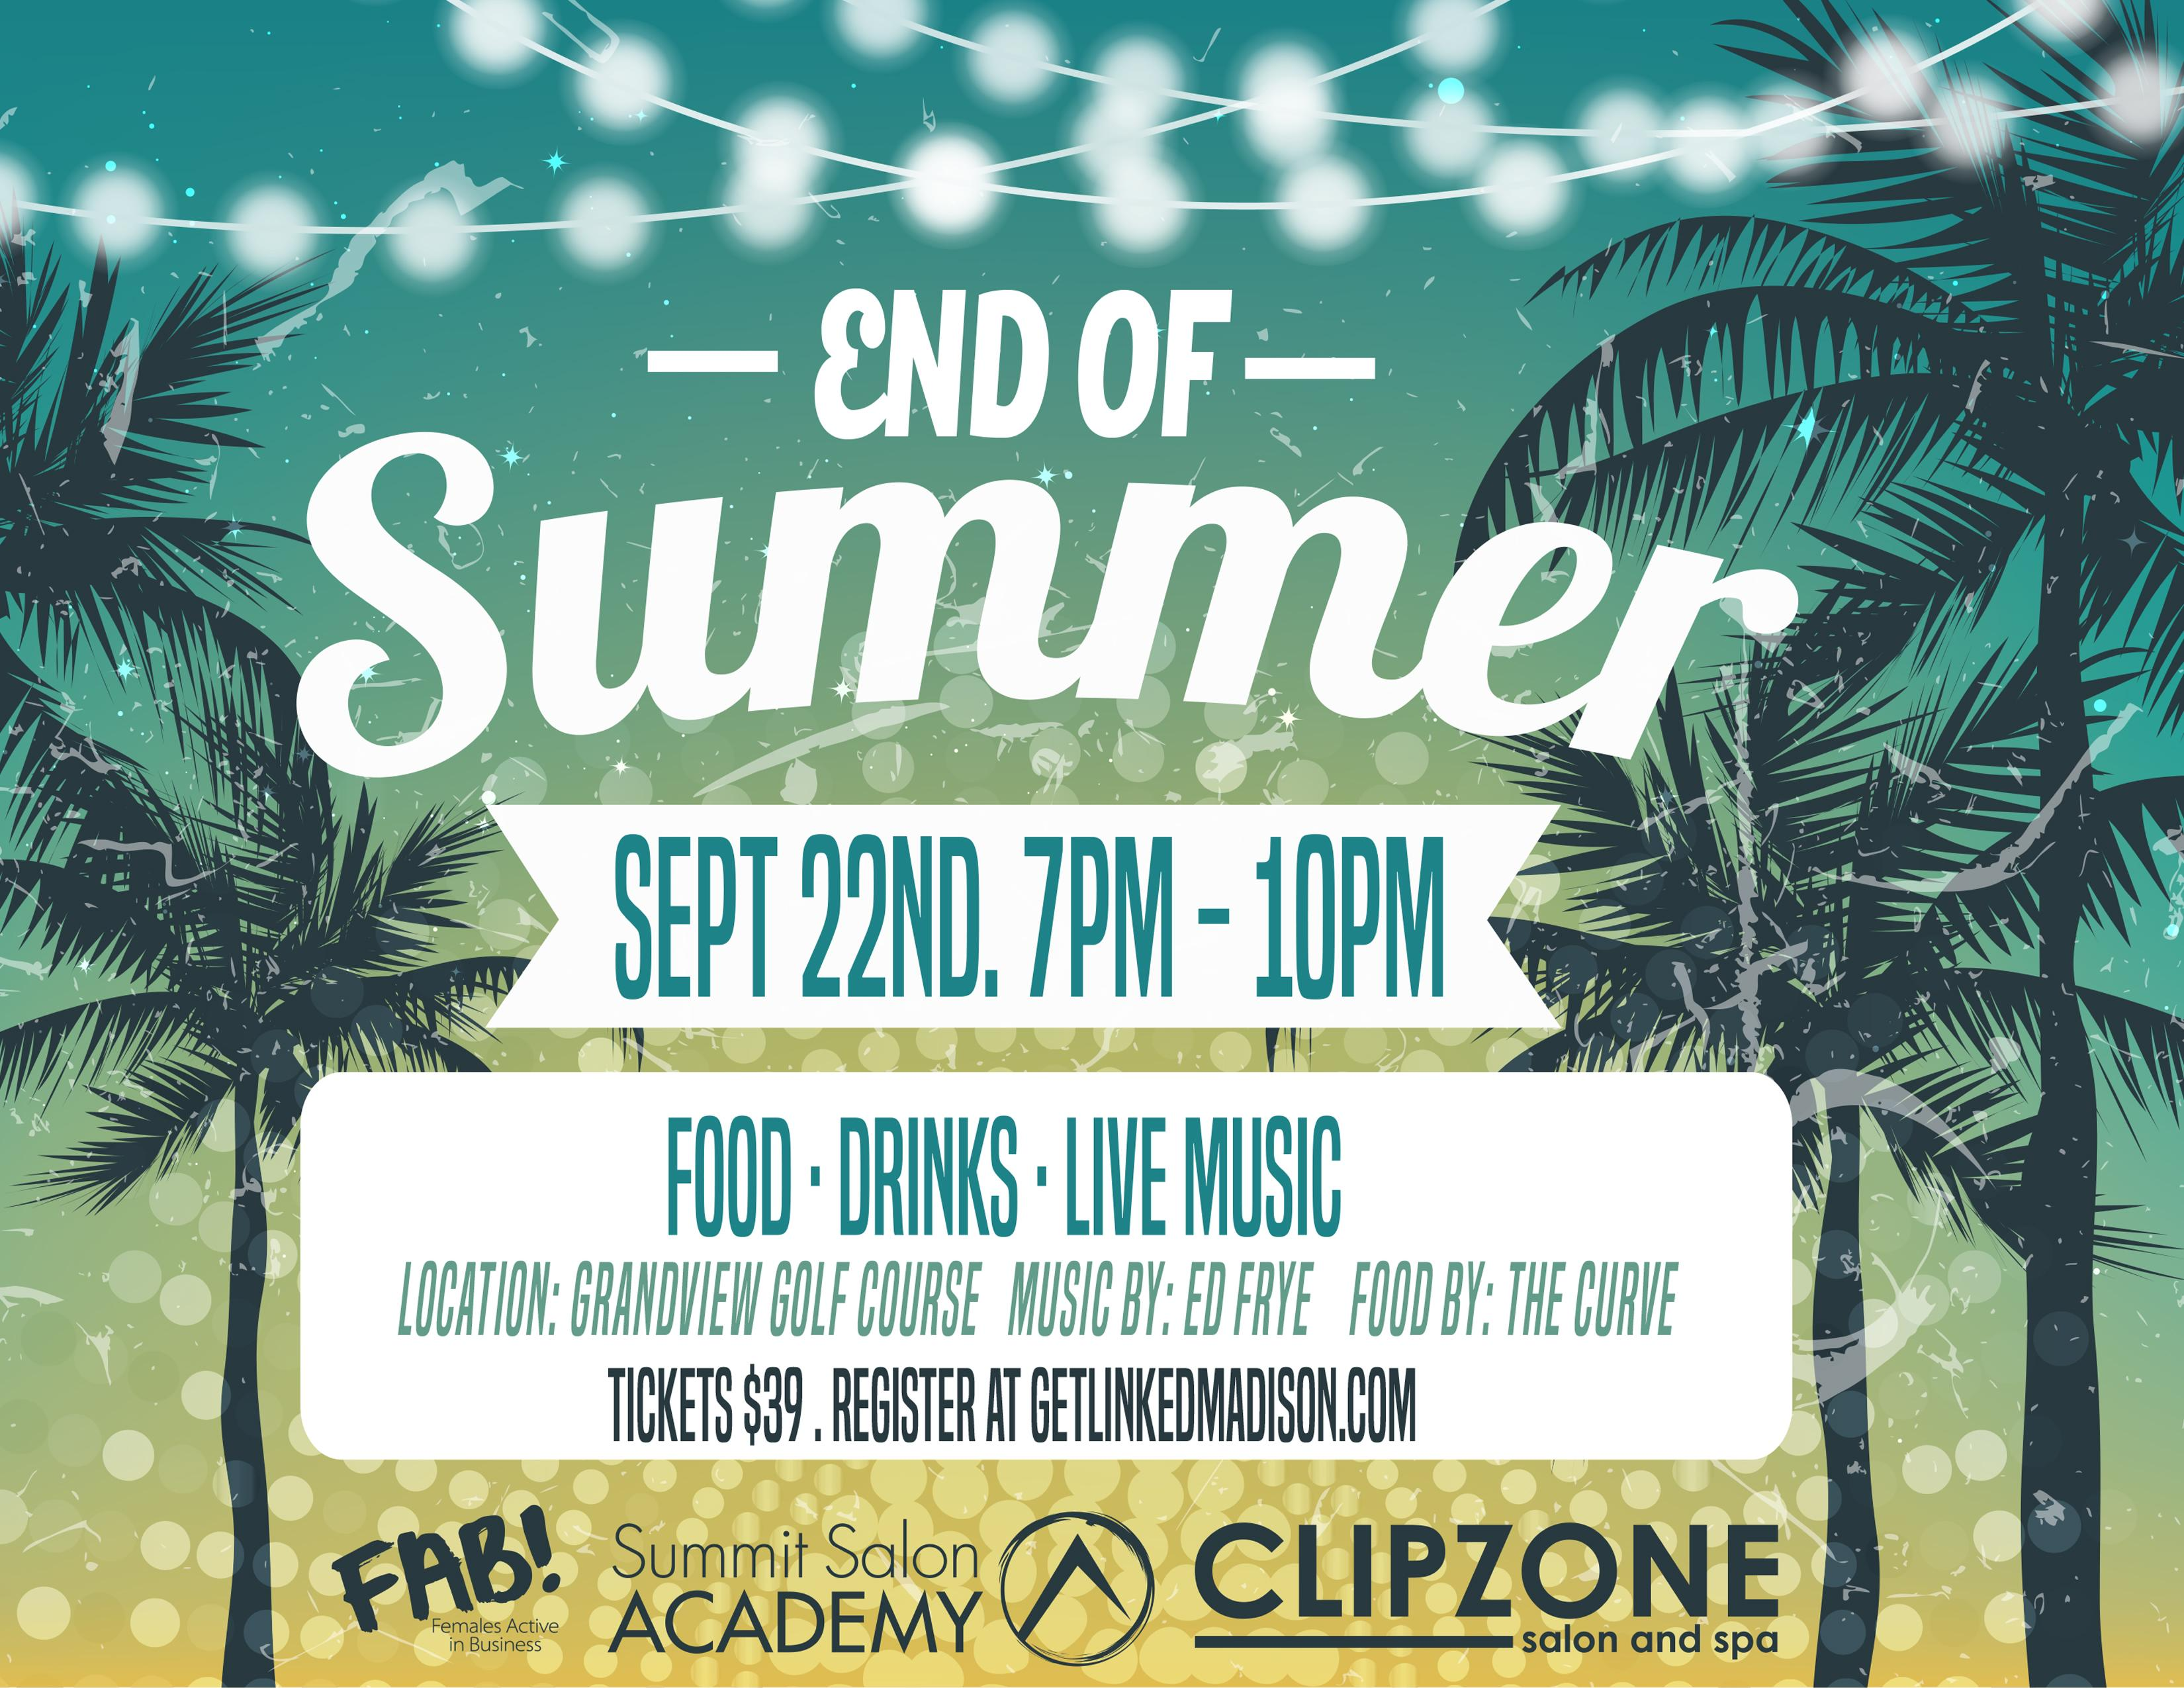 FAB! End of Summer Party Sep 22 @Grandview